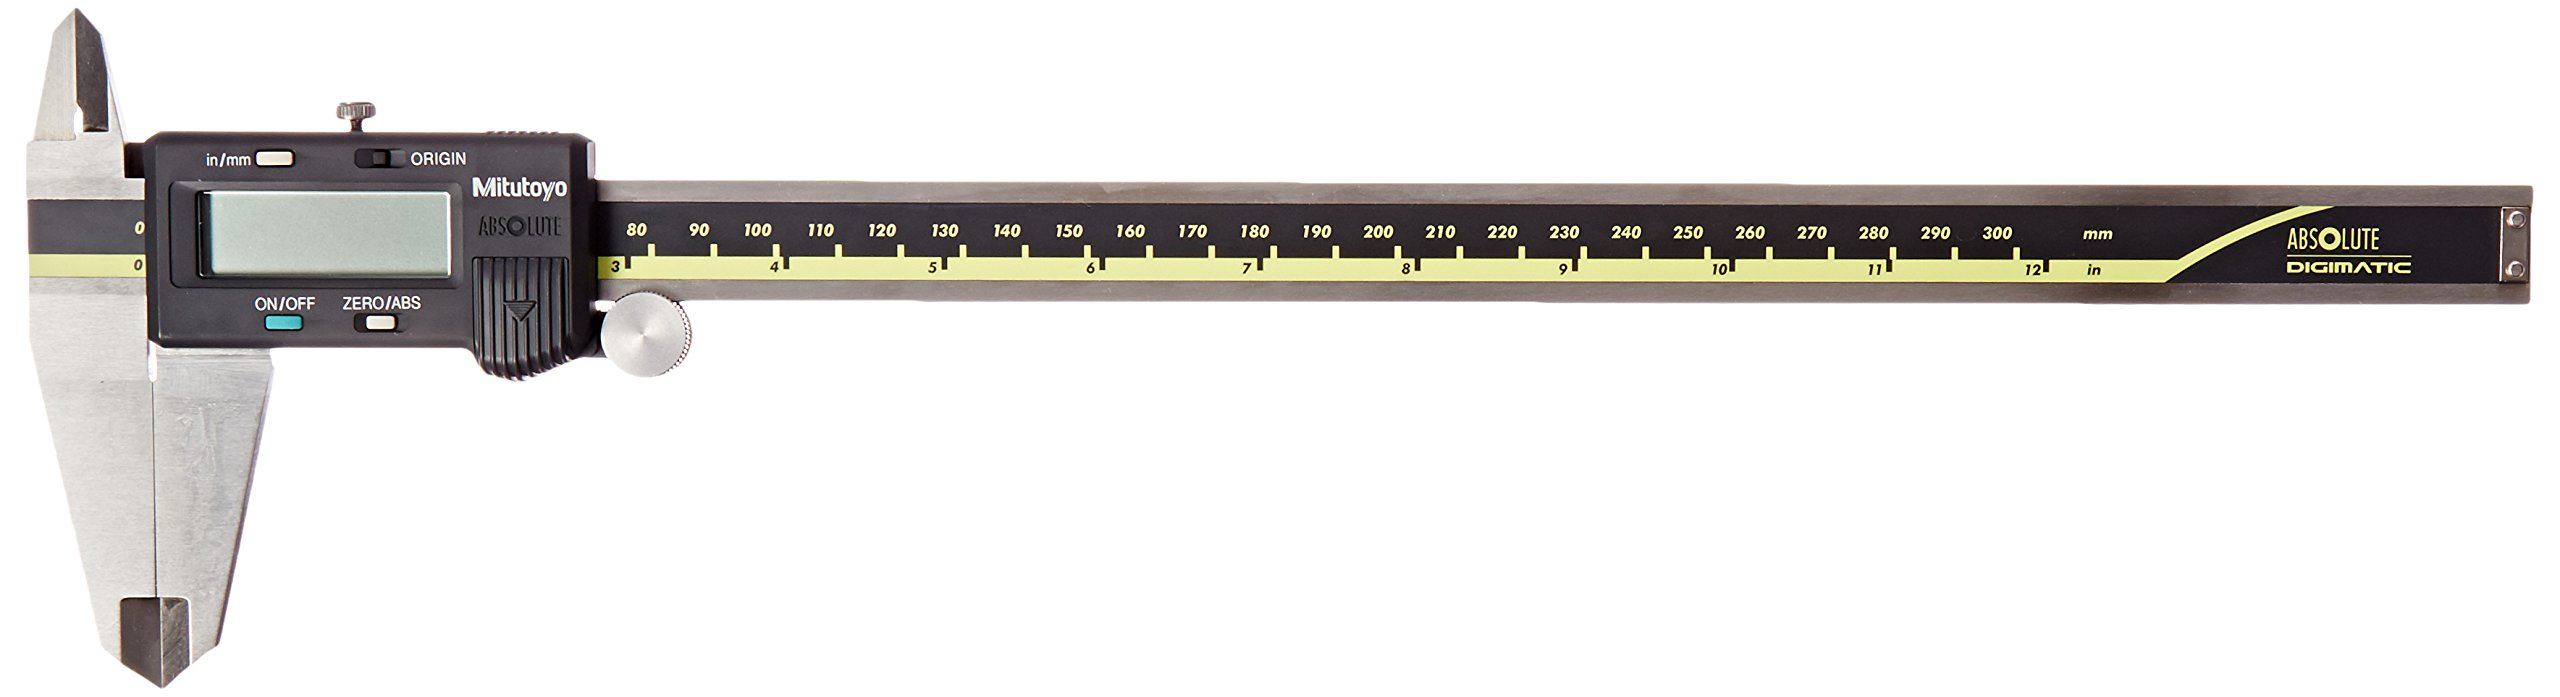 Mitutoyo 500-193 Absolute Digital Caliper, Stainless Steel, Battery Powered, Inch/Metric, 0-12'' Range, +/-0.0015'' Accuracy, 0.0005'' Resolution